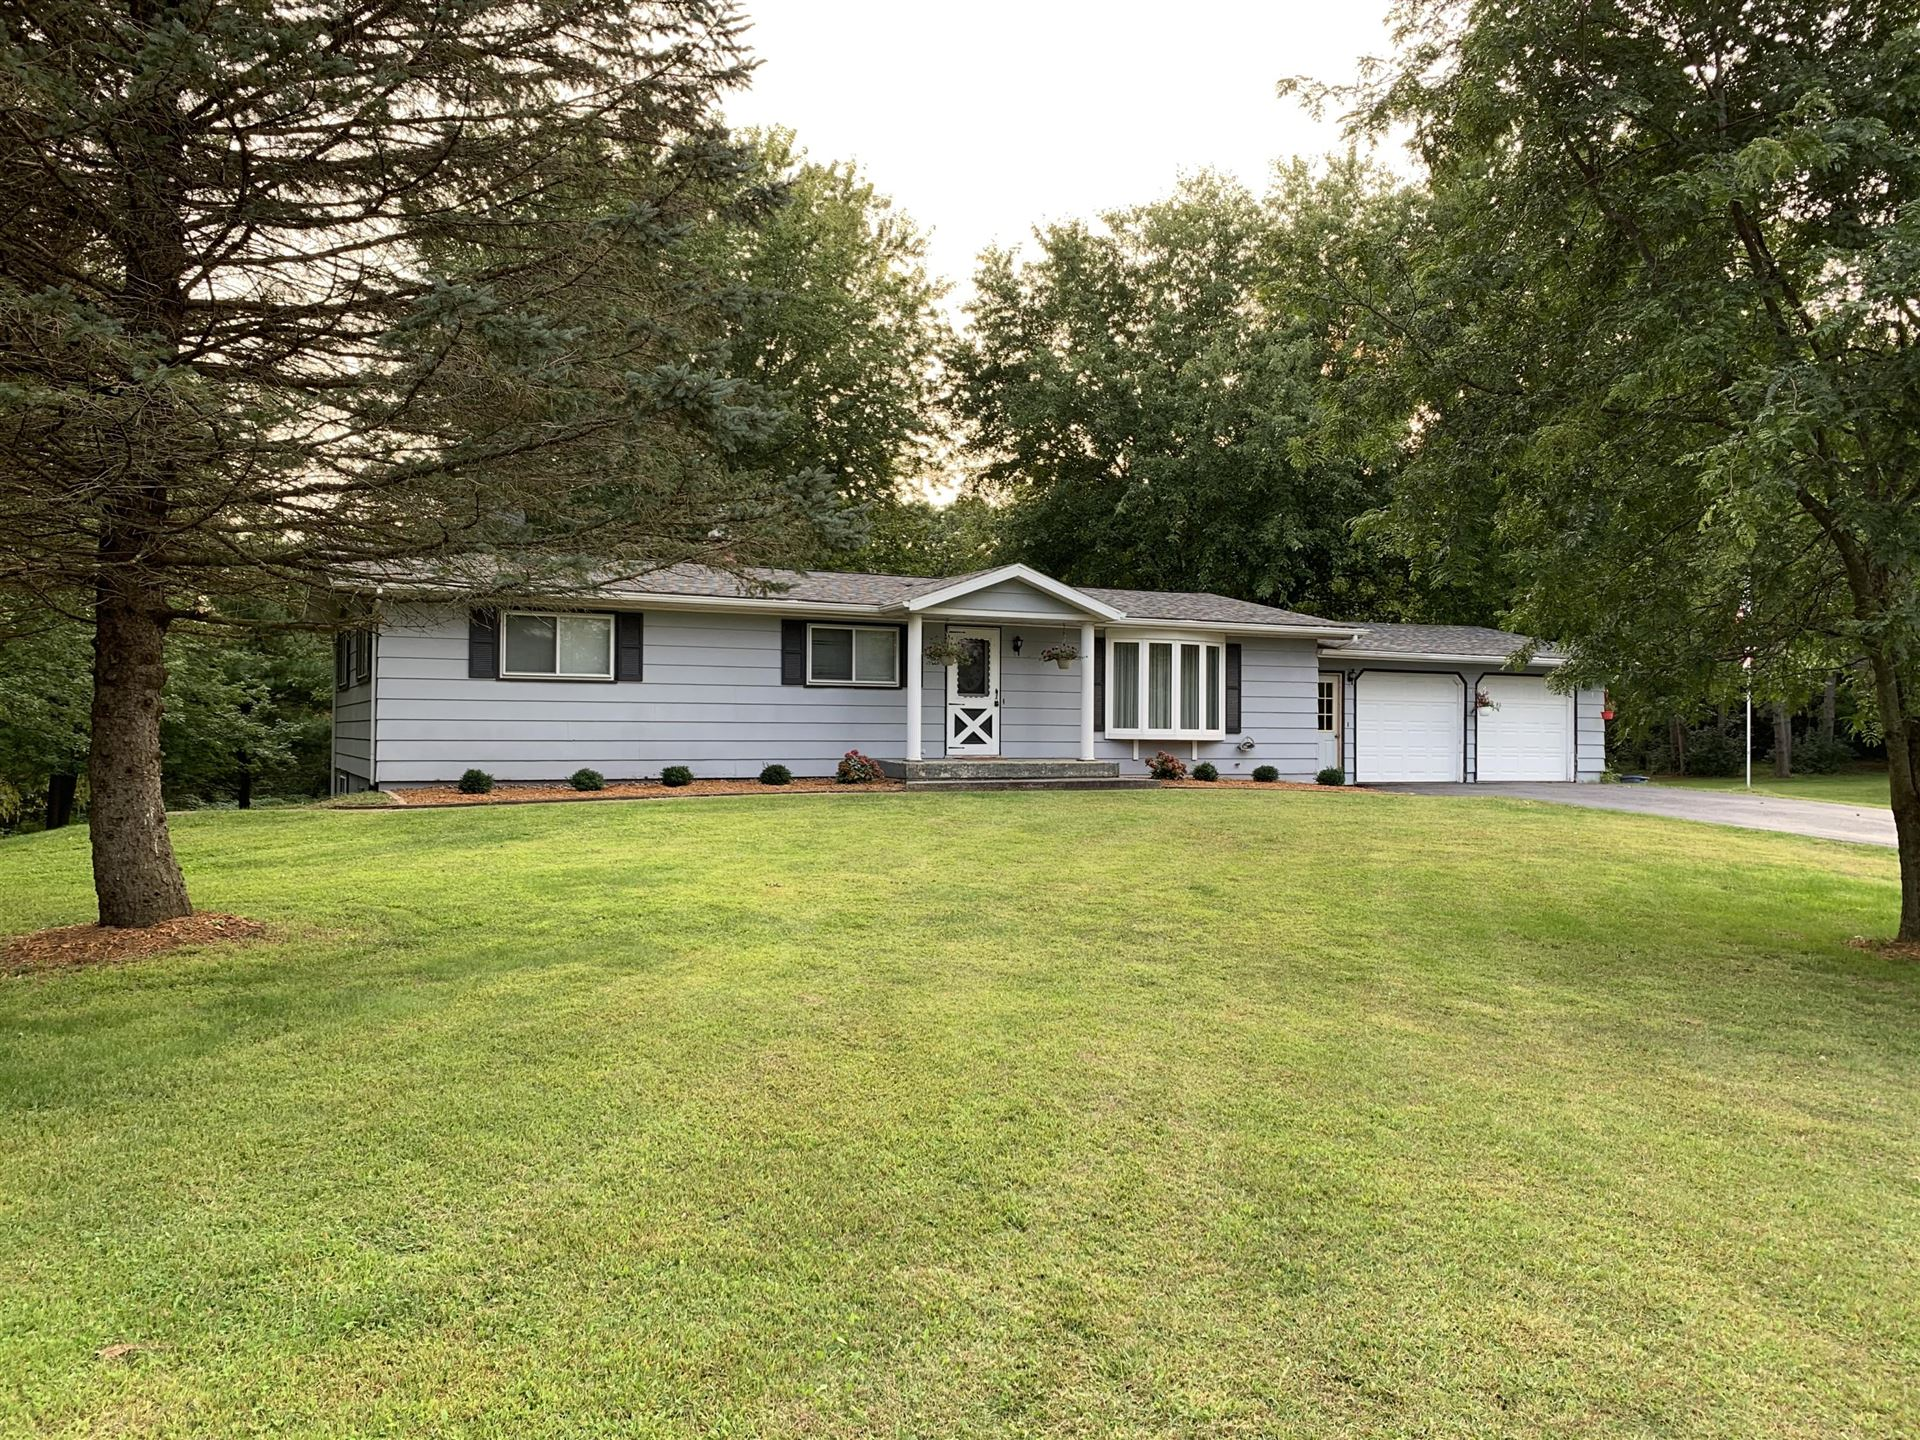 18127 Icicle Rd, Sparta, WI 54656 - MLS#: 1709741